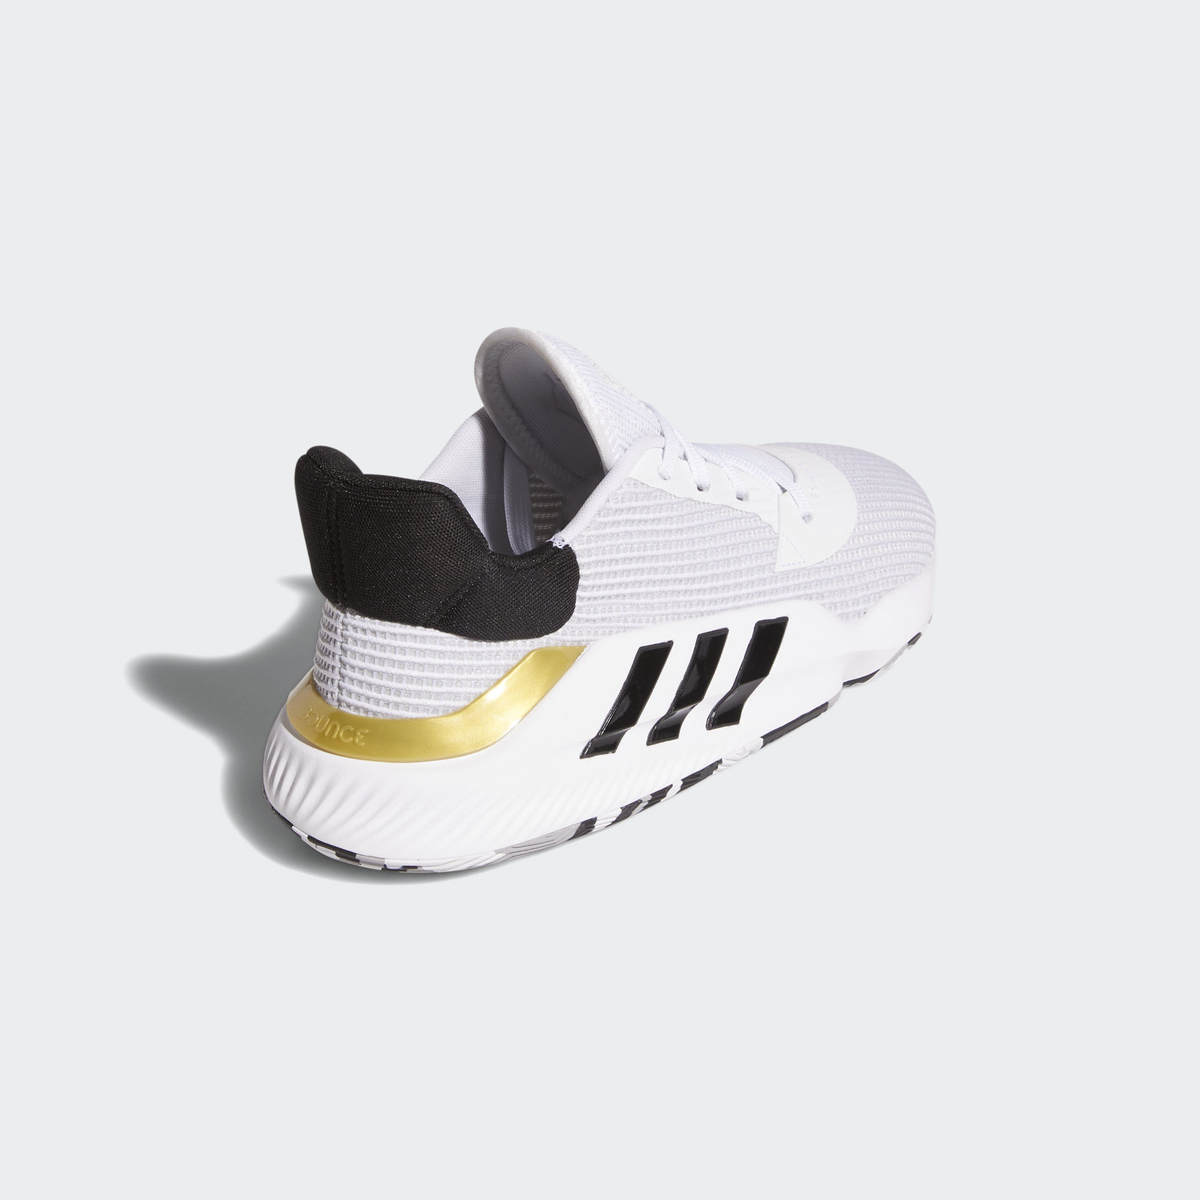 A First Look At The Adidas Pro Bounce 2019